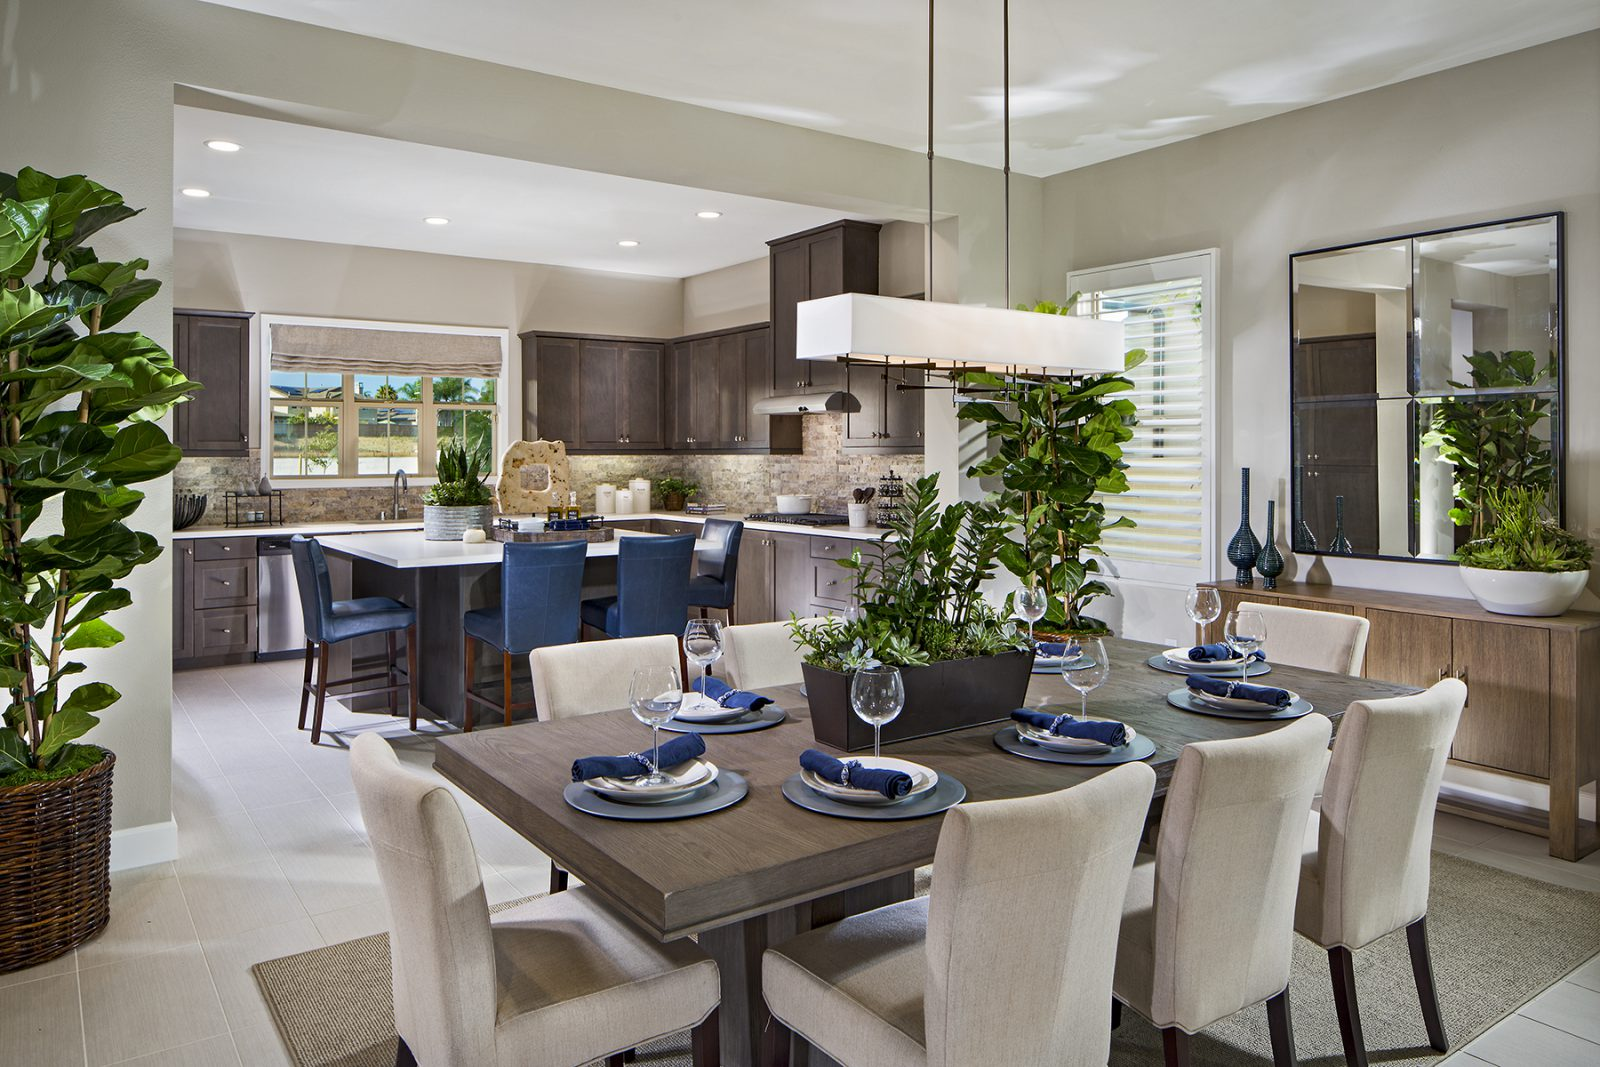 Candela New Home in San Marcos - Kitchen and Dining Room